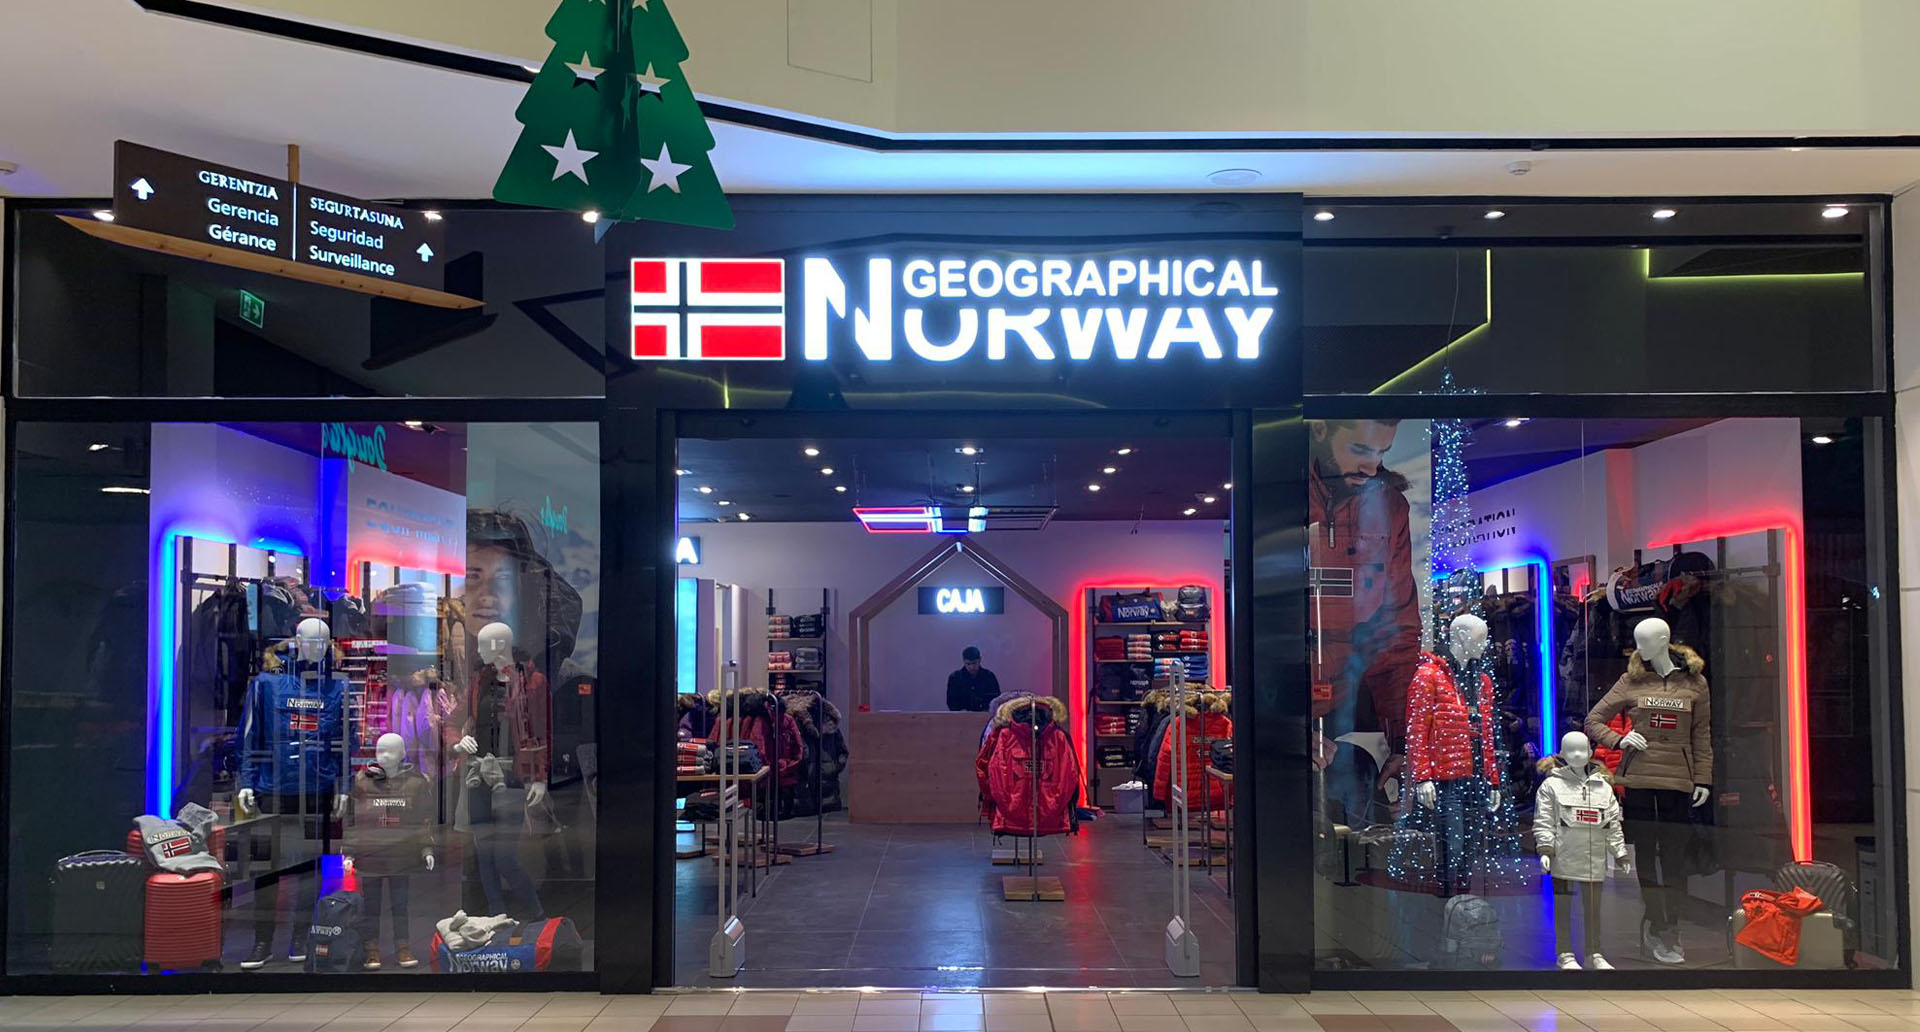 Nueva apertura en Txingudi: Geographical Norway